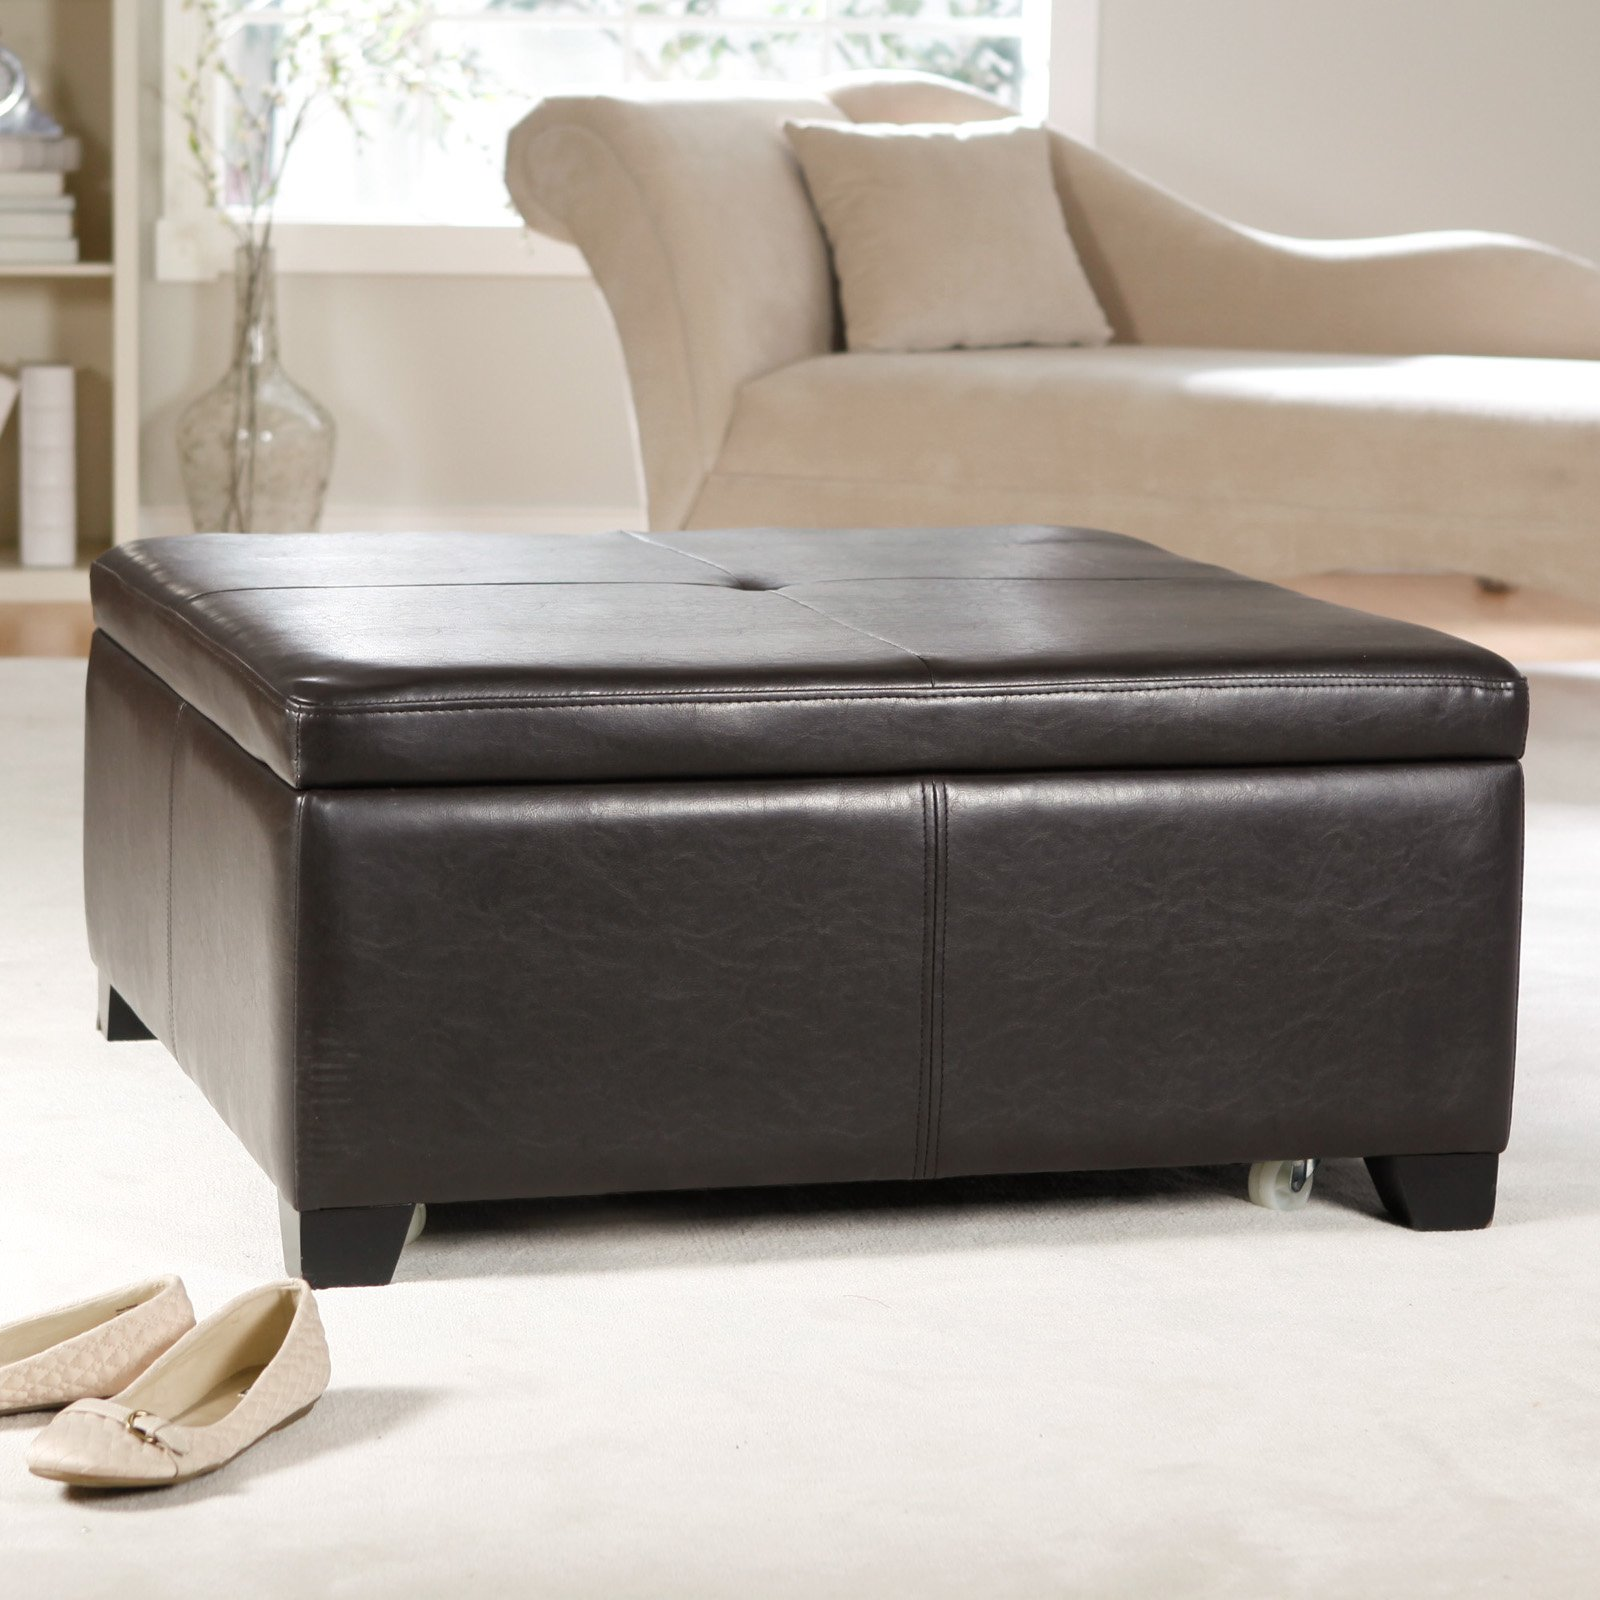 Coffee Table Footrest Storage: Decorating Ideas And Solutions